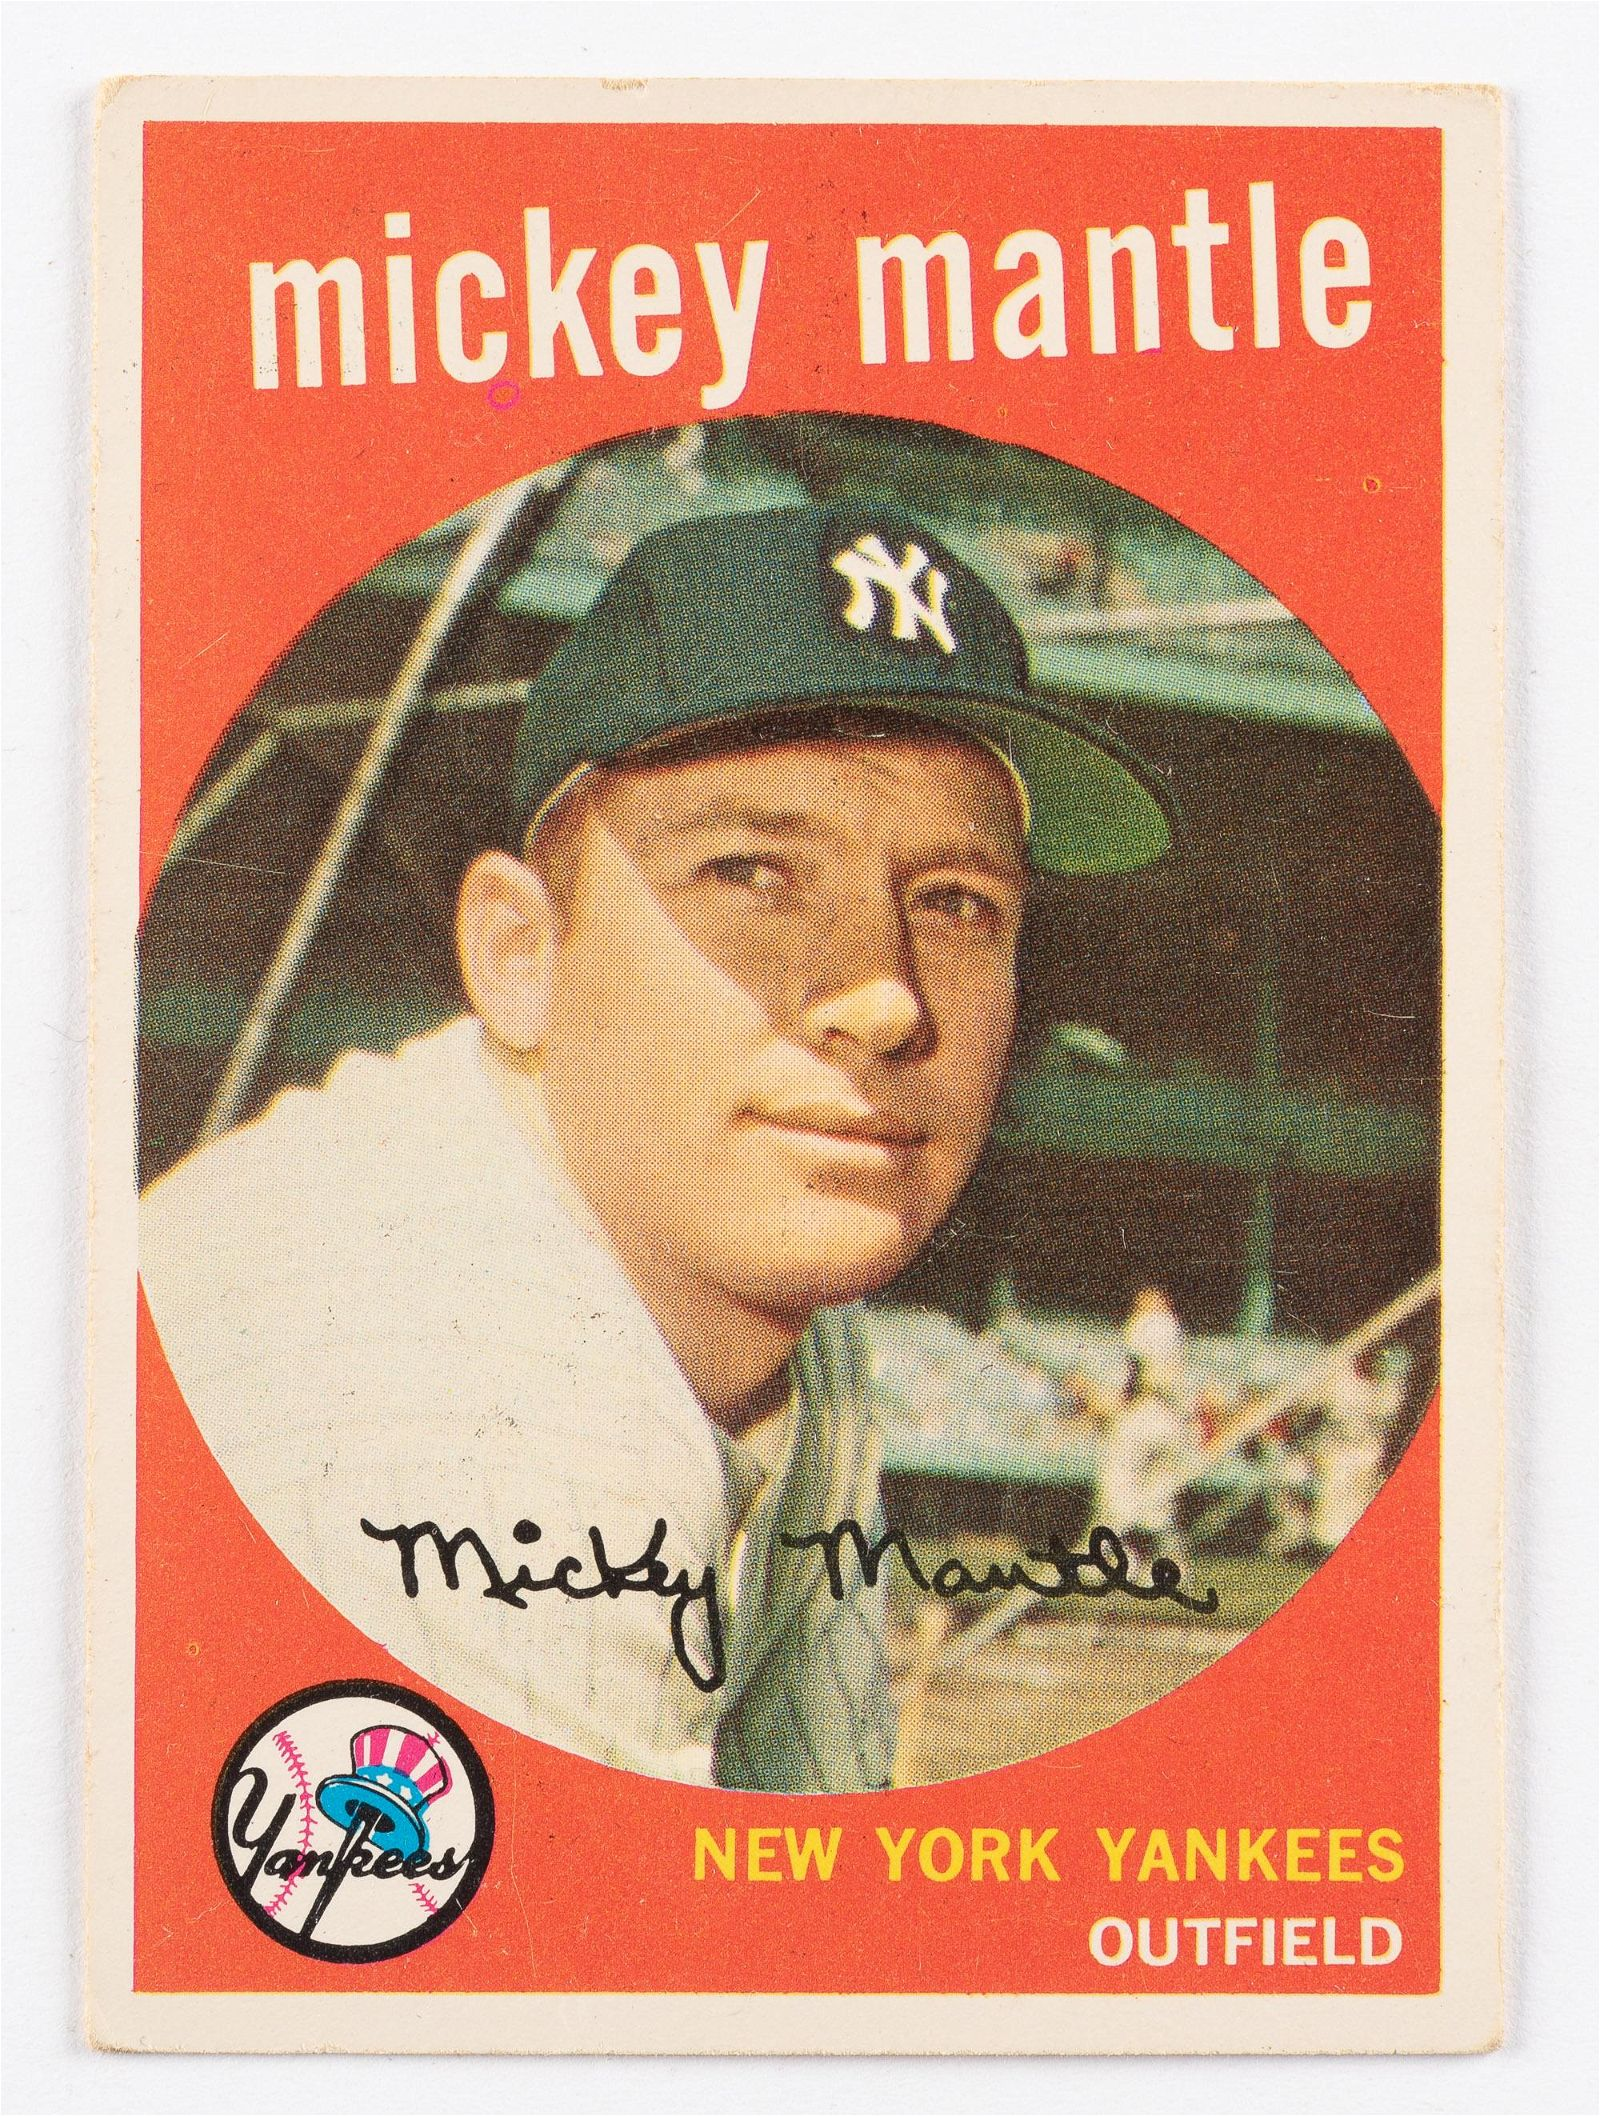 1959 Mantle Vintage Baseball Card